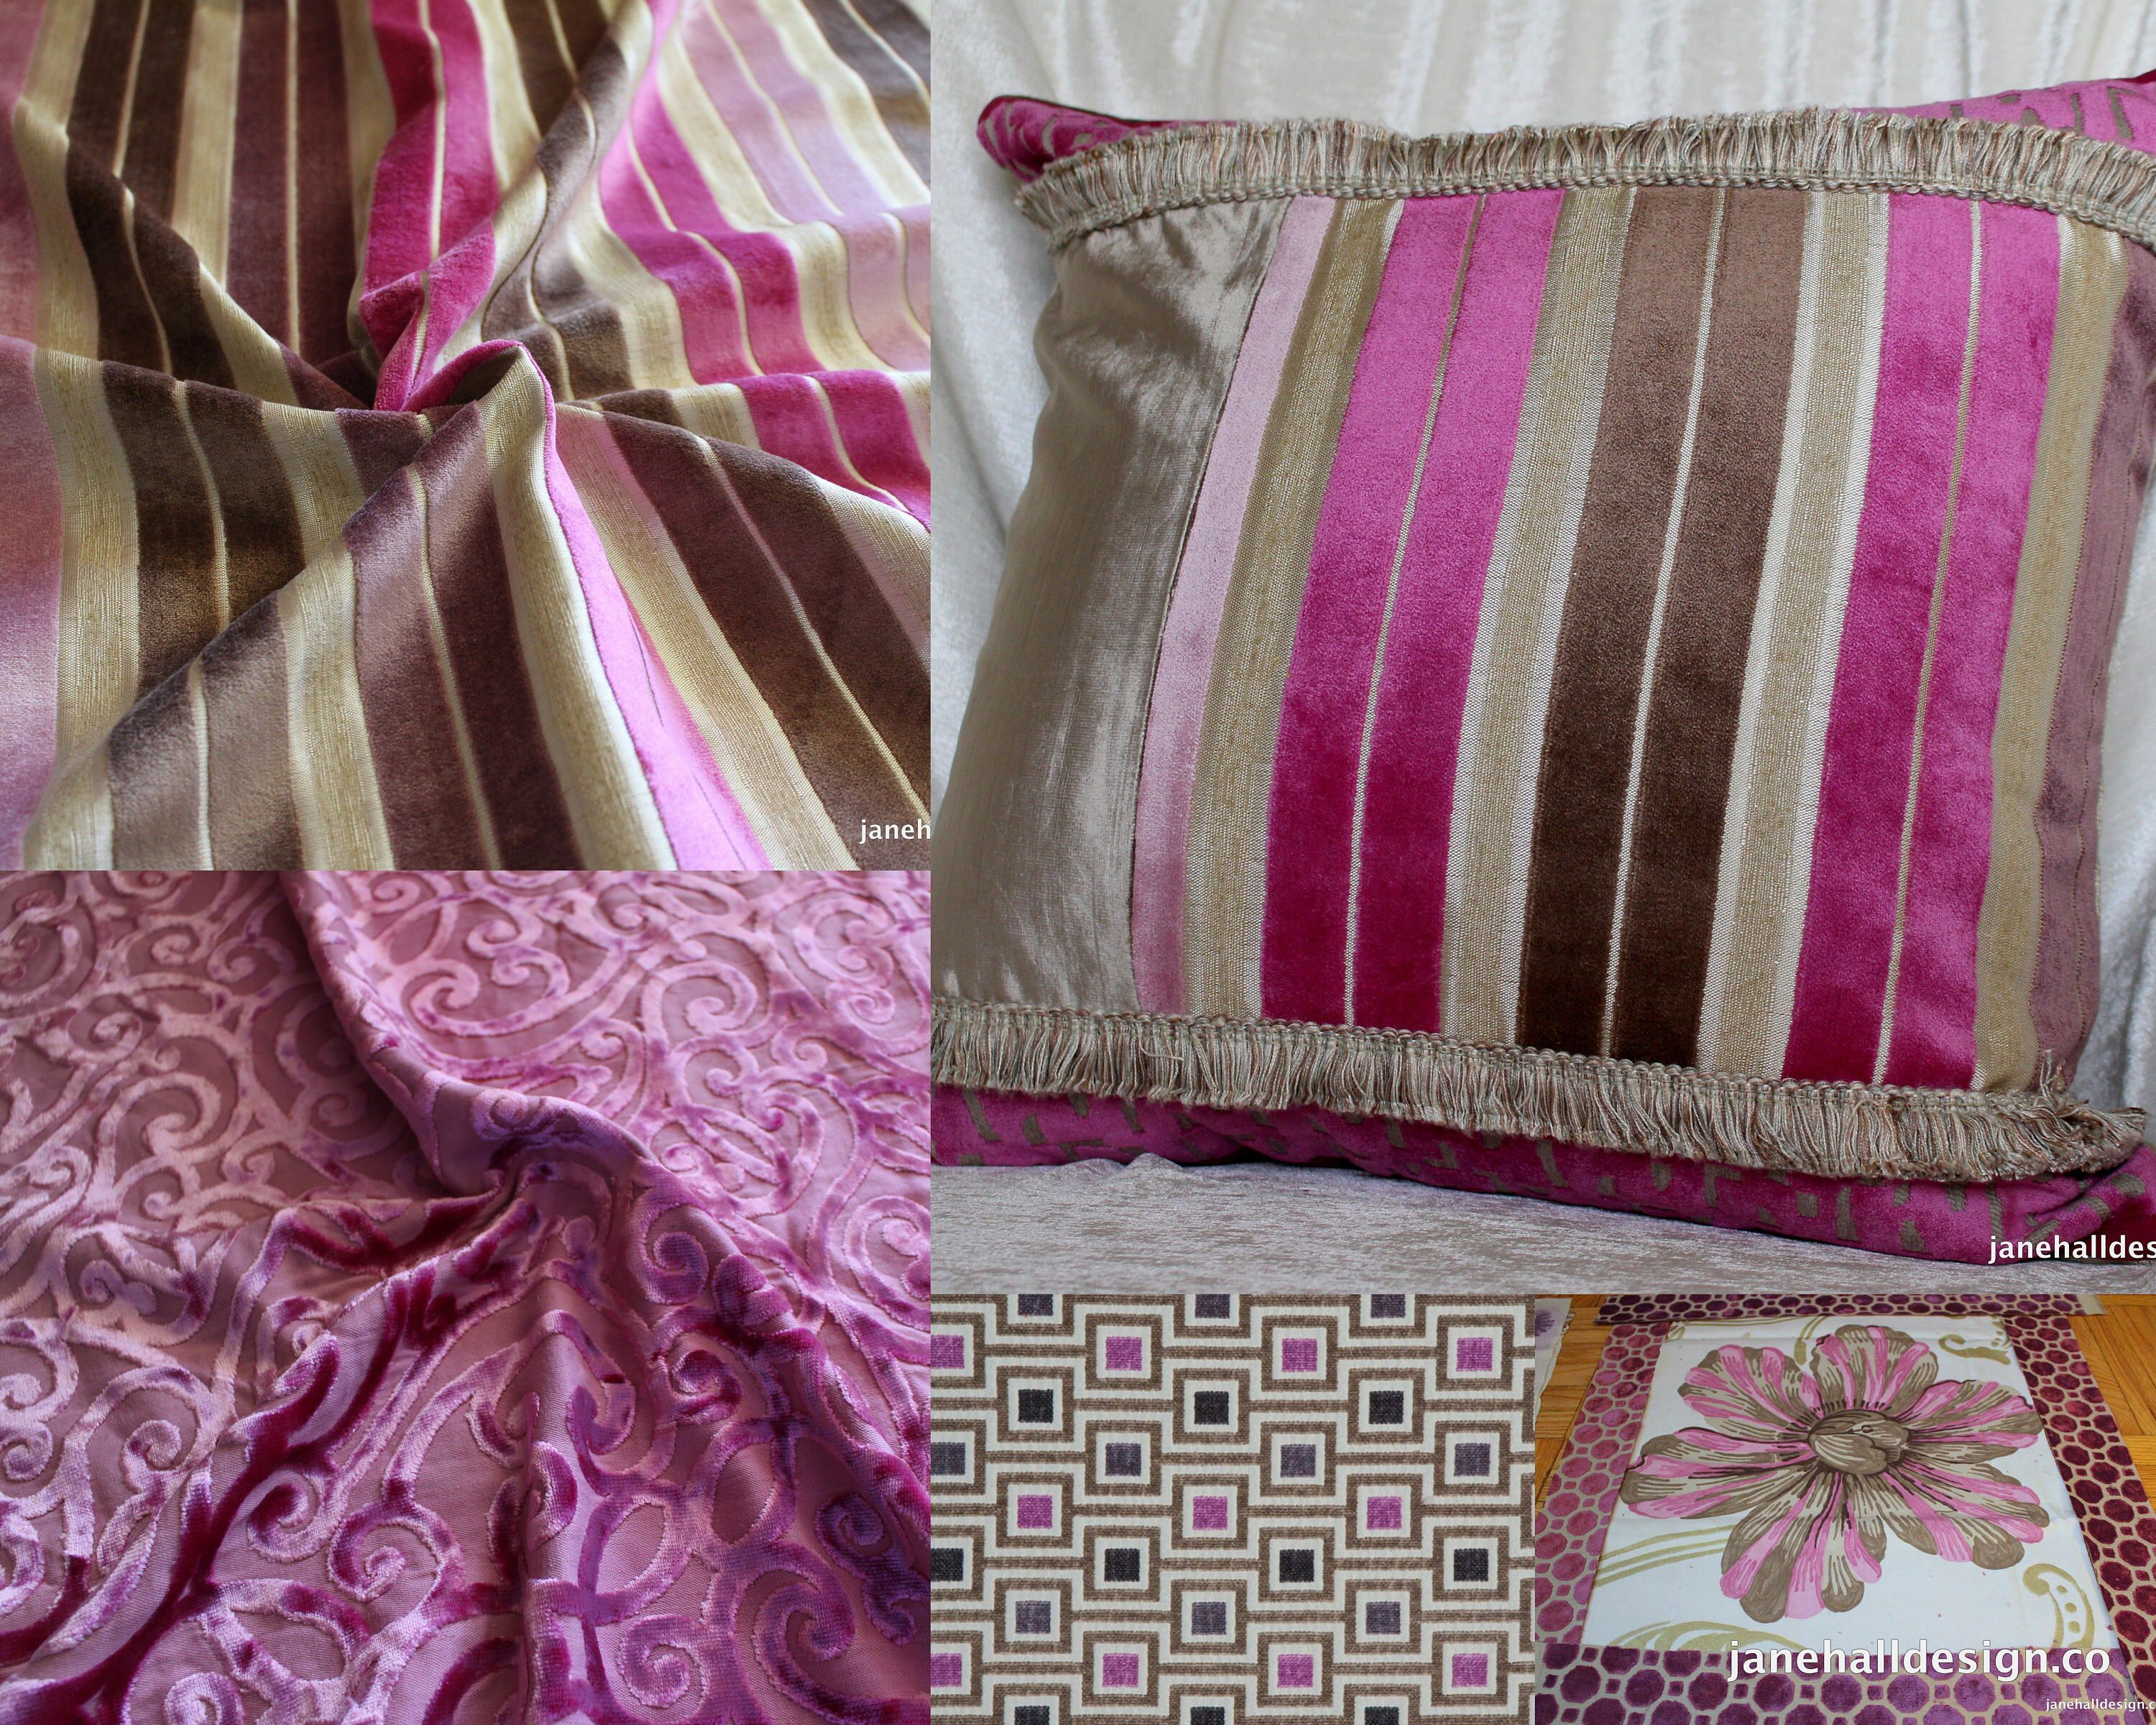 Designers Guild, Regence Peony Pink and Taupe, Cut Velvet Upholstery Fabric, From Jane Hall Design